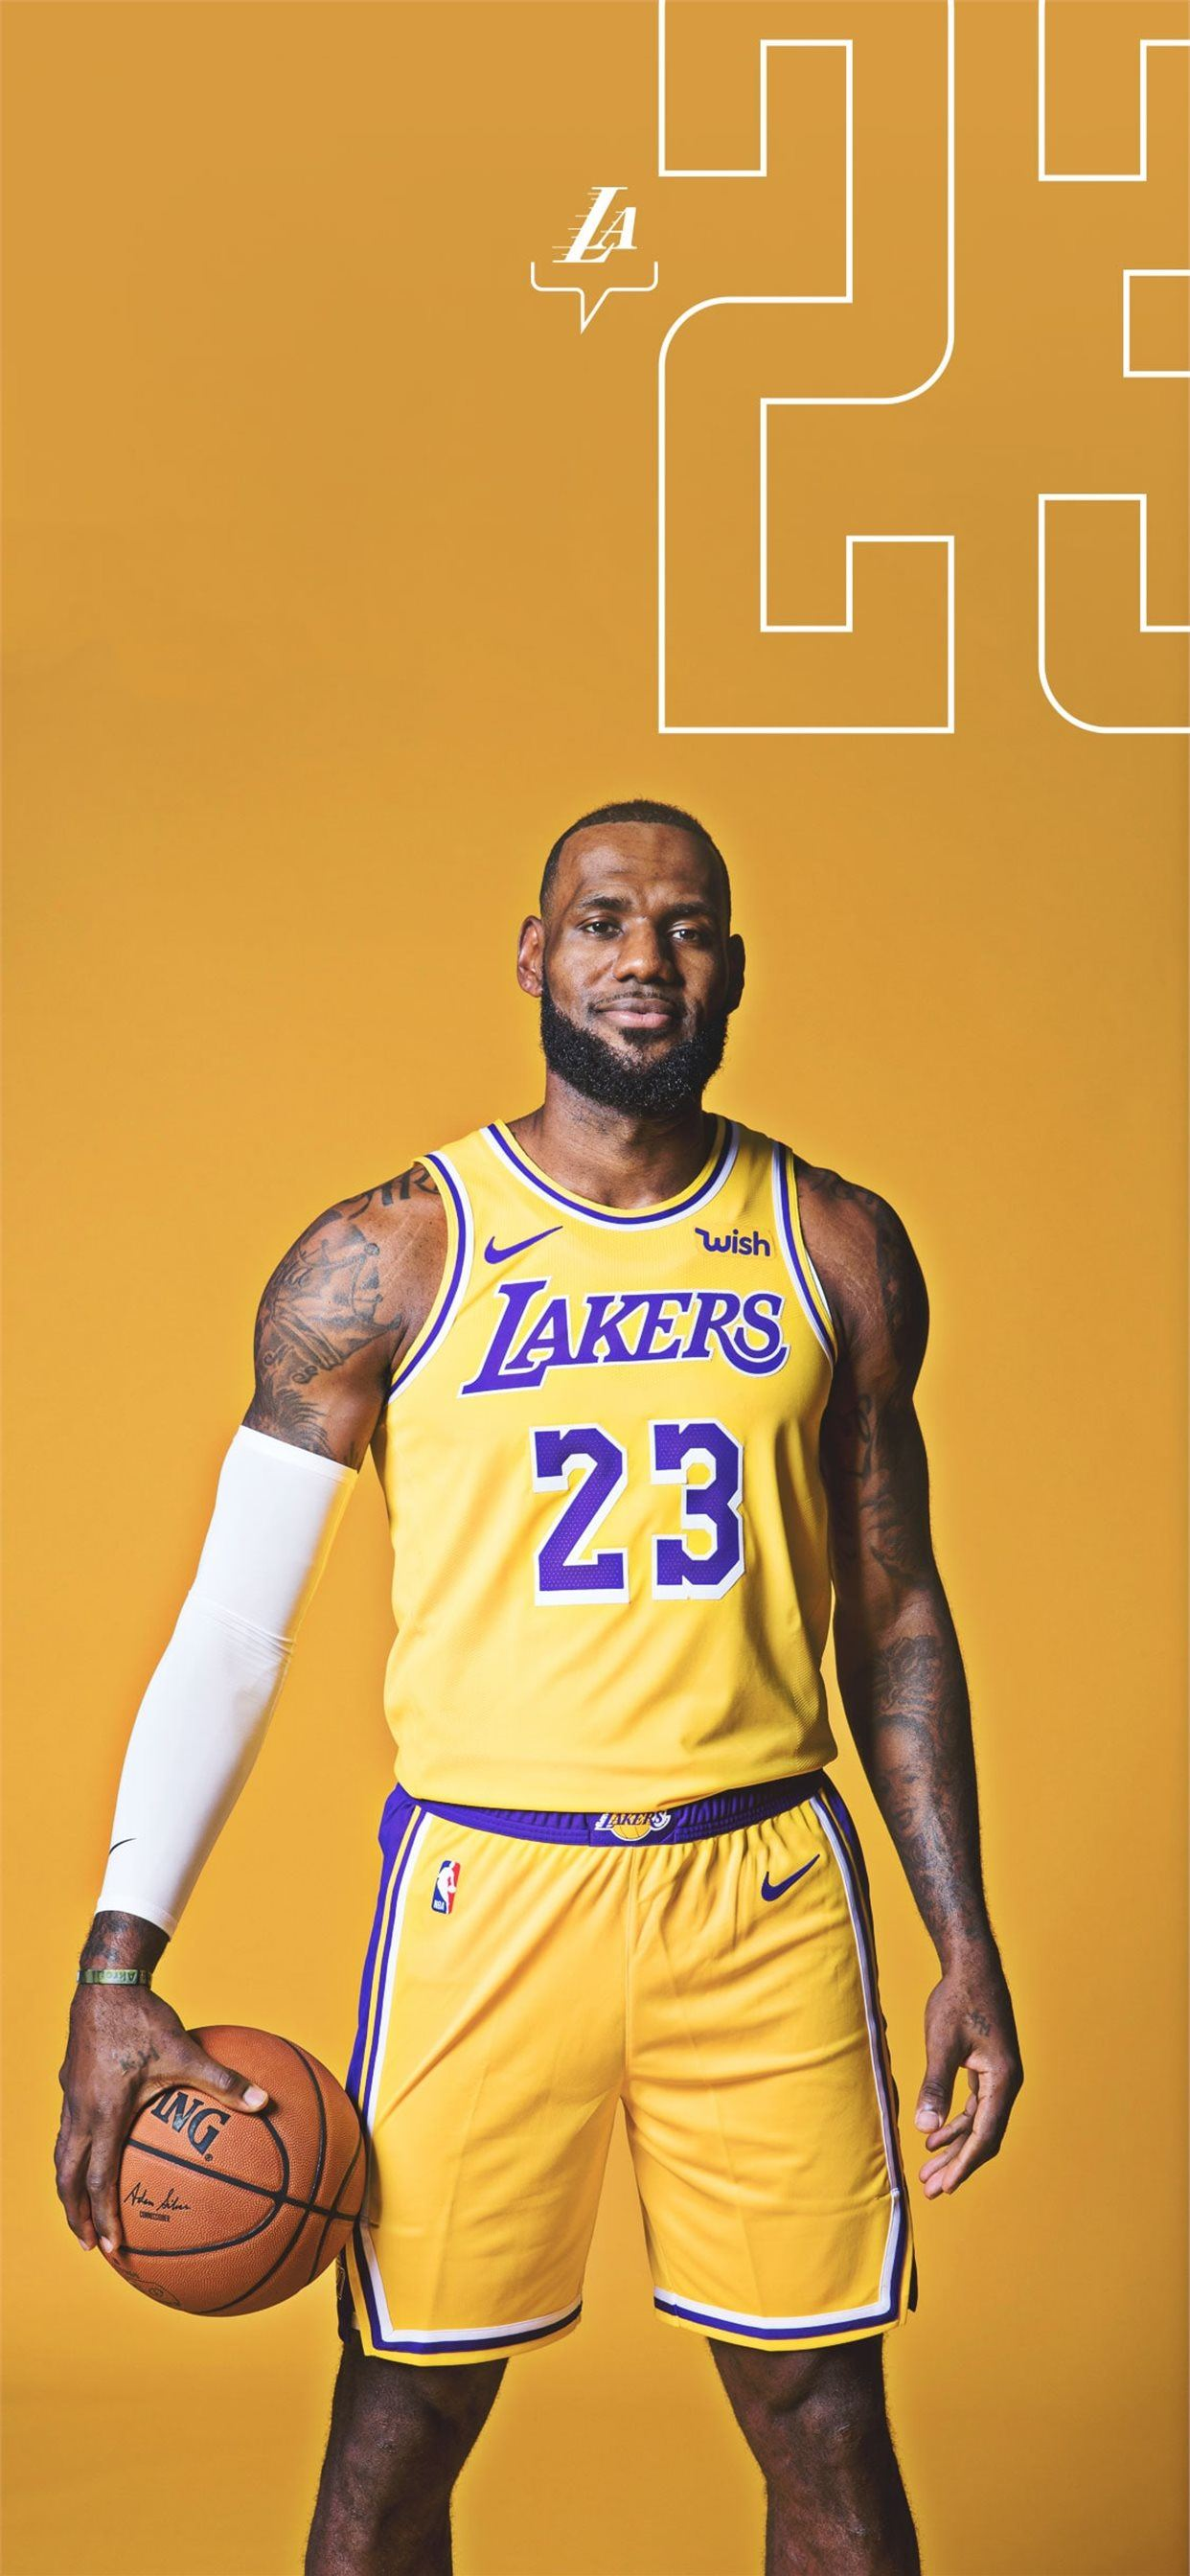 2020 Lebron James Wallpaper Kolpaper Awesome Free Hd Wallpapers